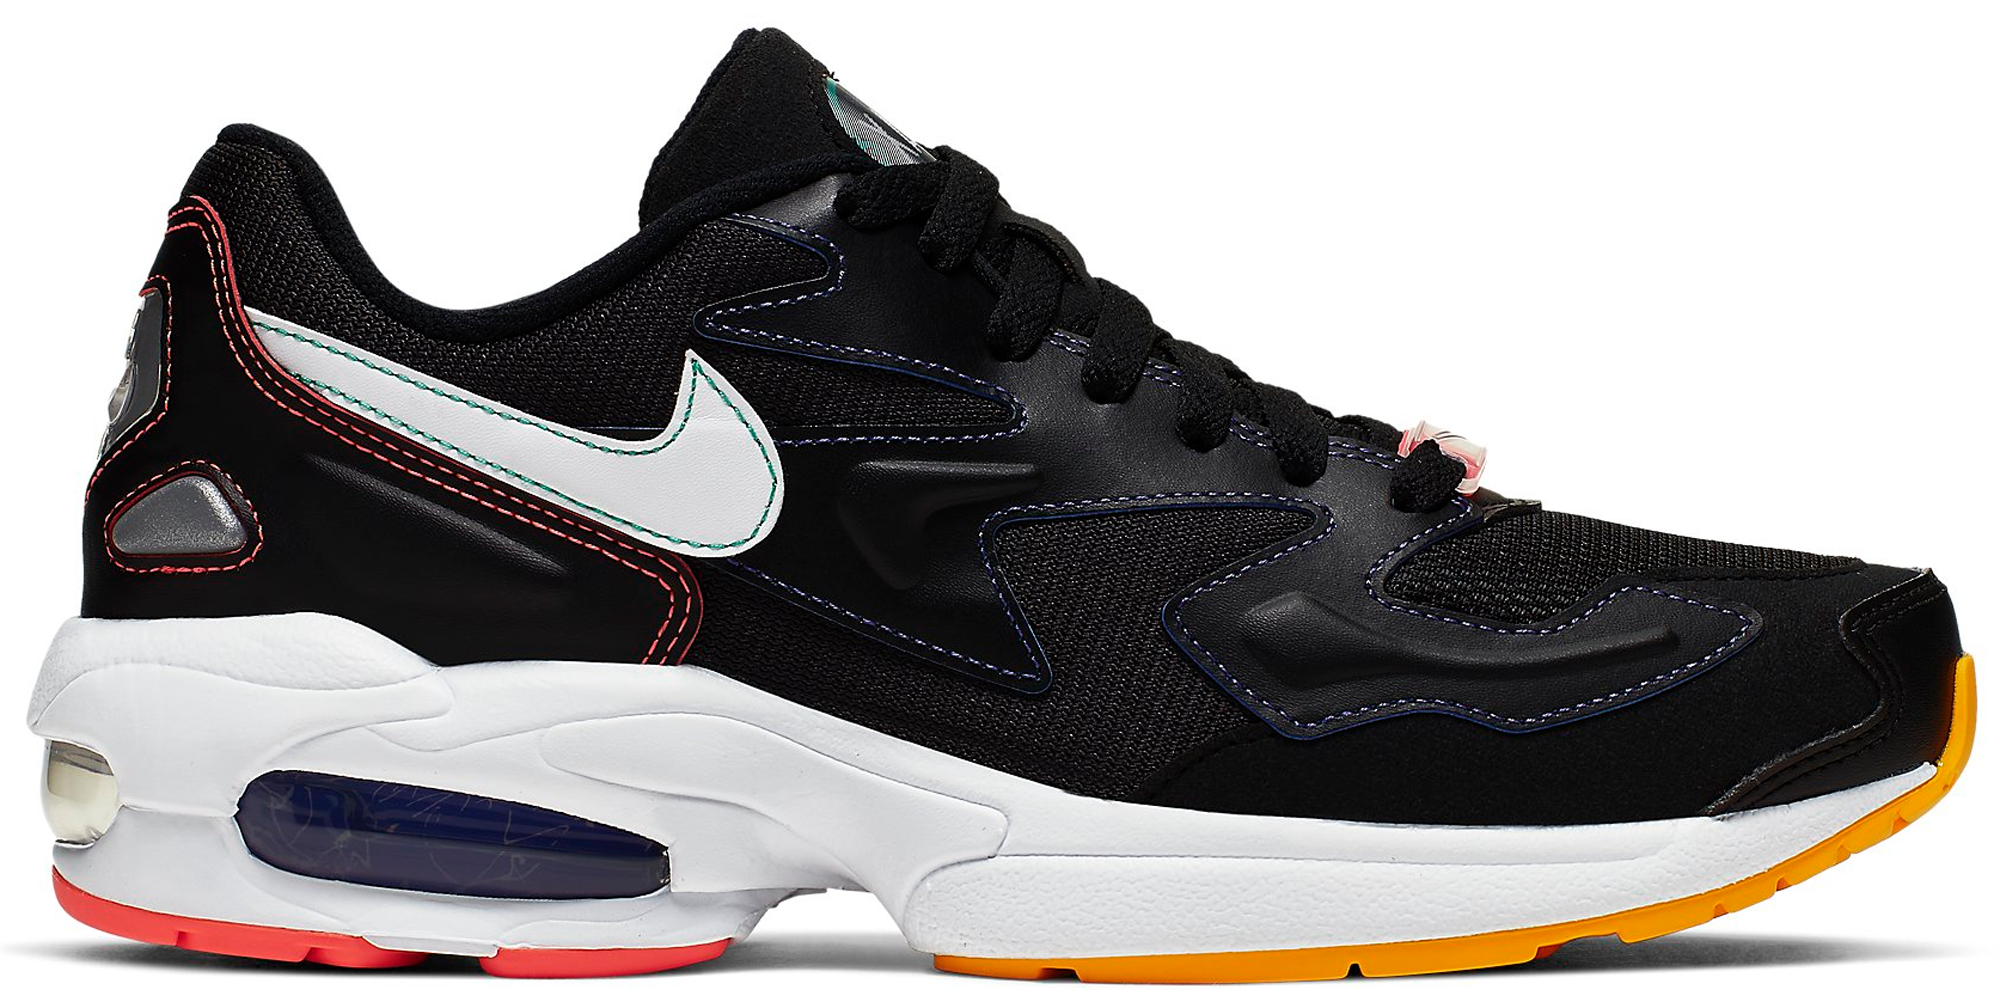 Air Max2 Light Black Contrast Stitching (W) in BlackWhite Psychic Purple University Gold Flash Crimson Kinetic Green